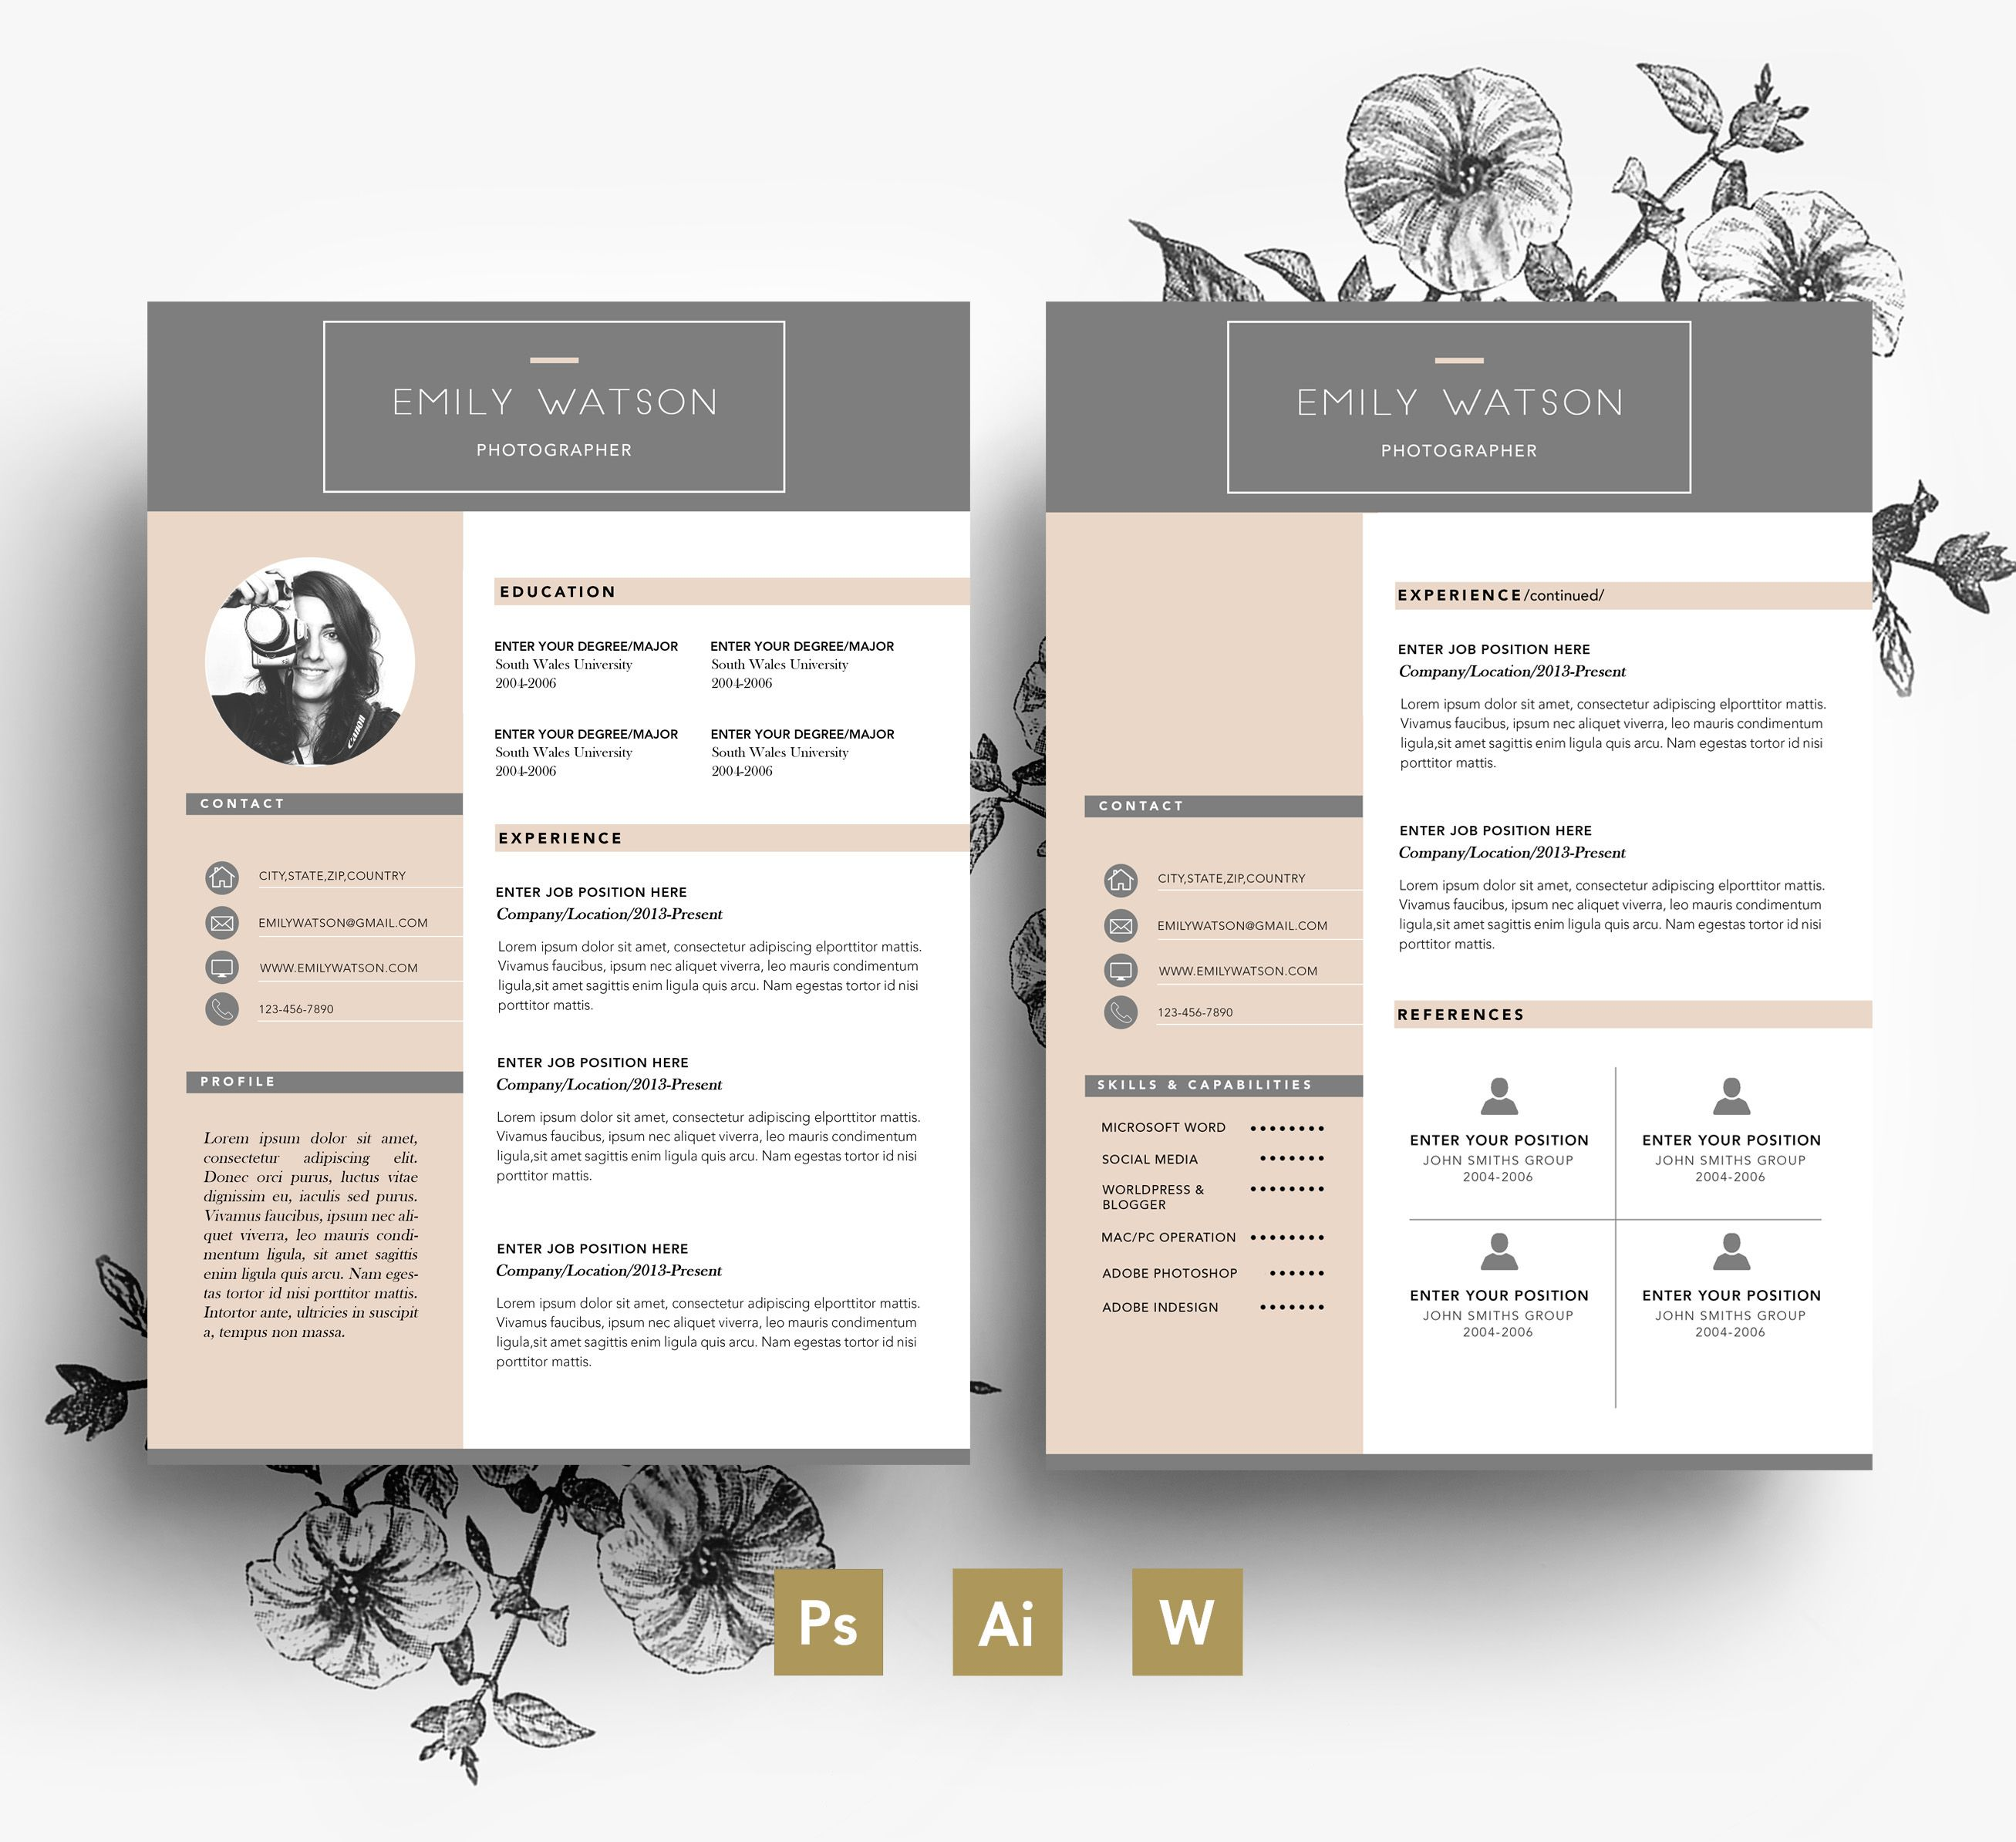 Magnificent 10 Steps To Creating A Resume Big 10 Words To Put On Your Resume Square 100 Greatest Resume Words 100 Resume Words Young 10x10 Grid Template Soft12 Tab Divider Template  Business Card   2 Page   Cover Letter ..